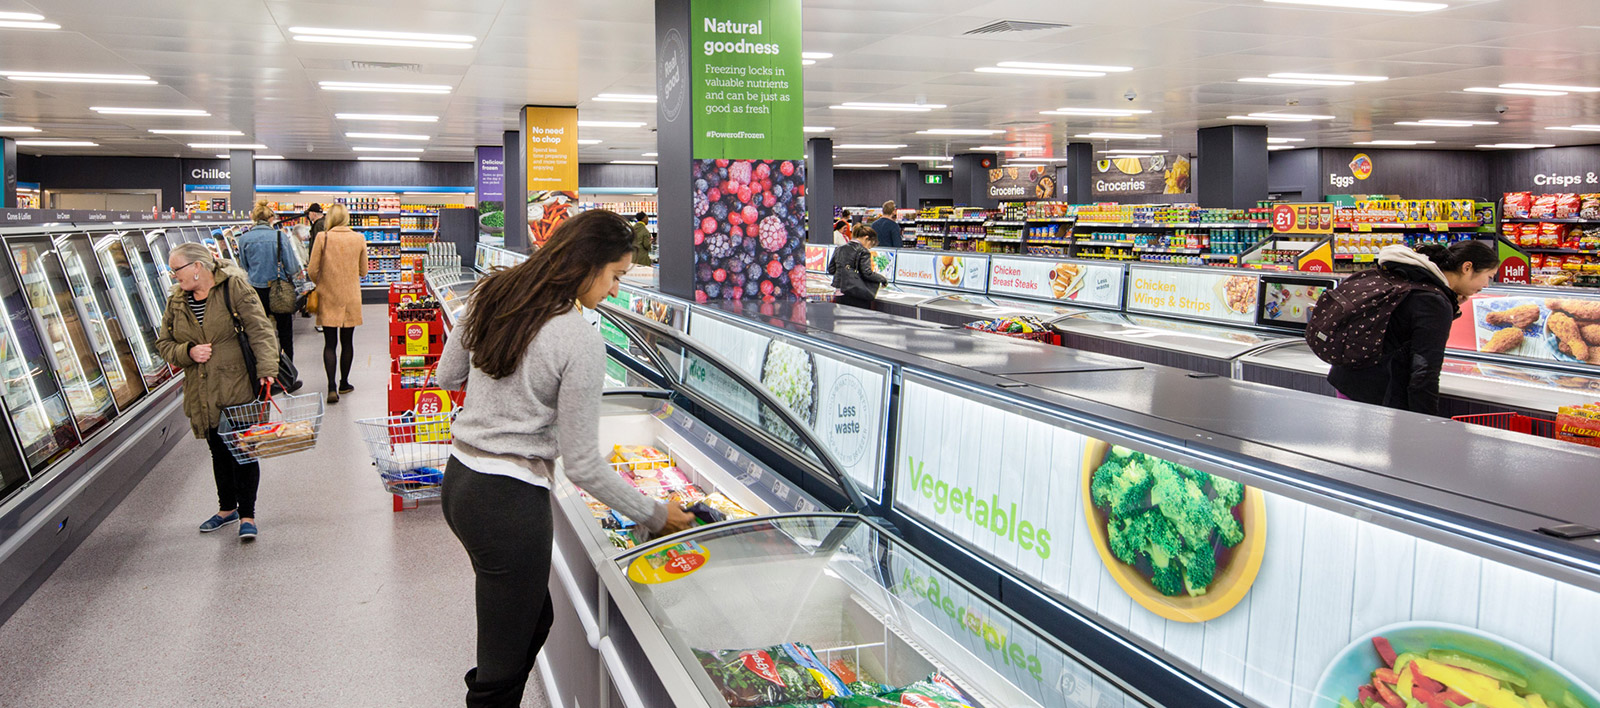 Lady picking up frozen food in Iceland supermarkets